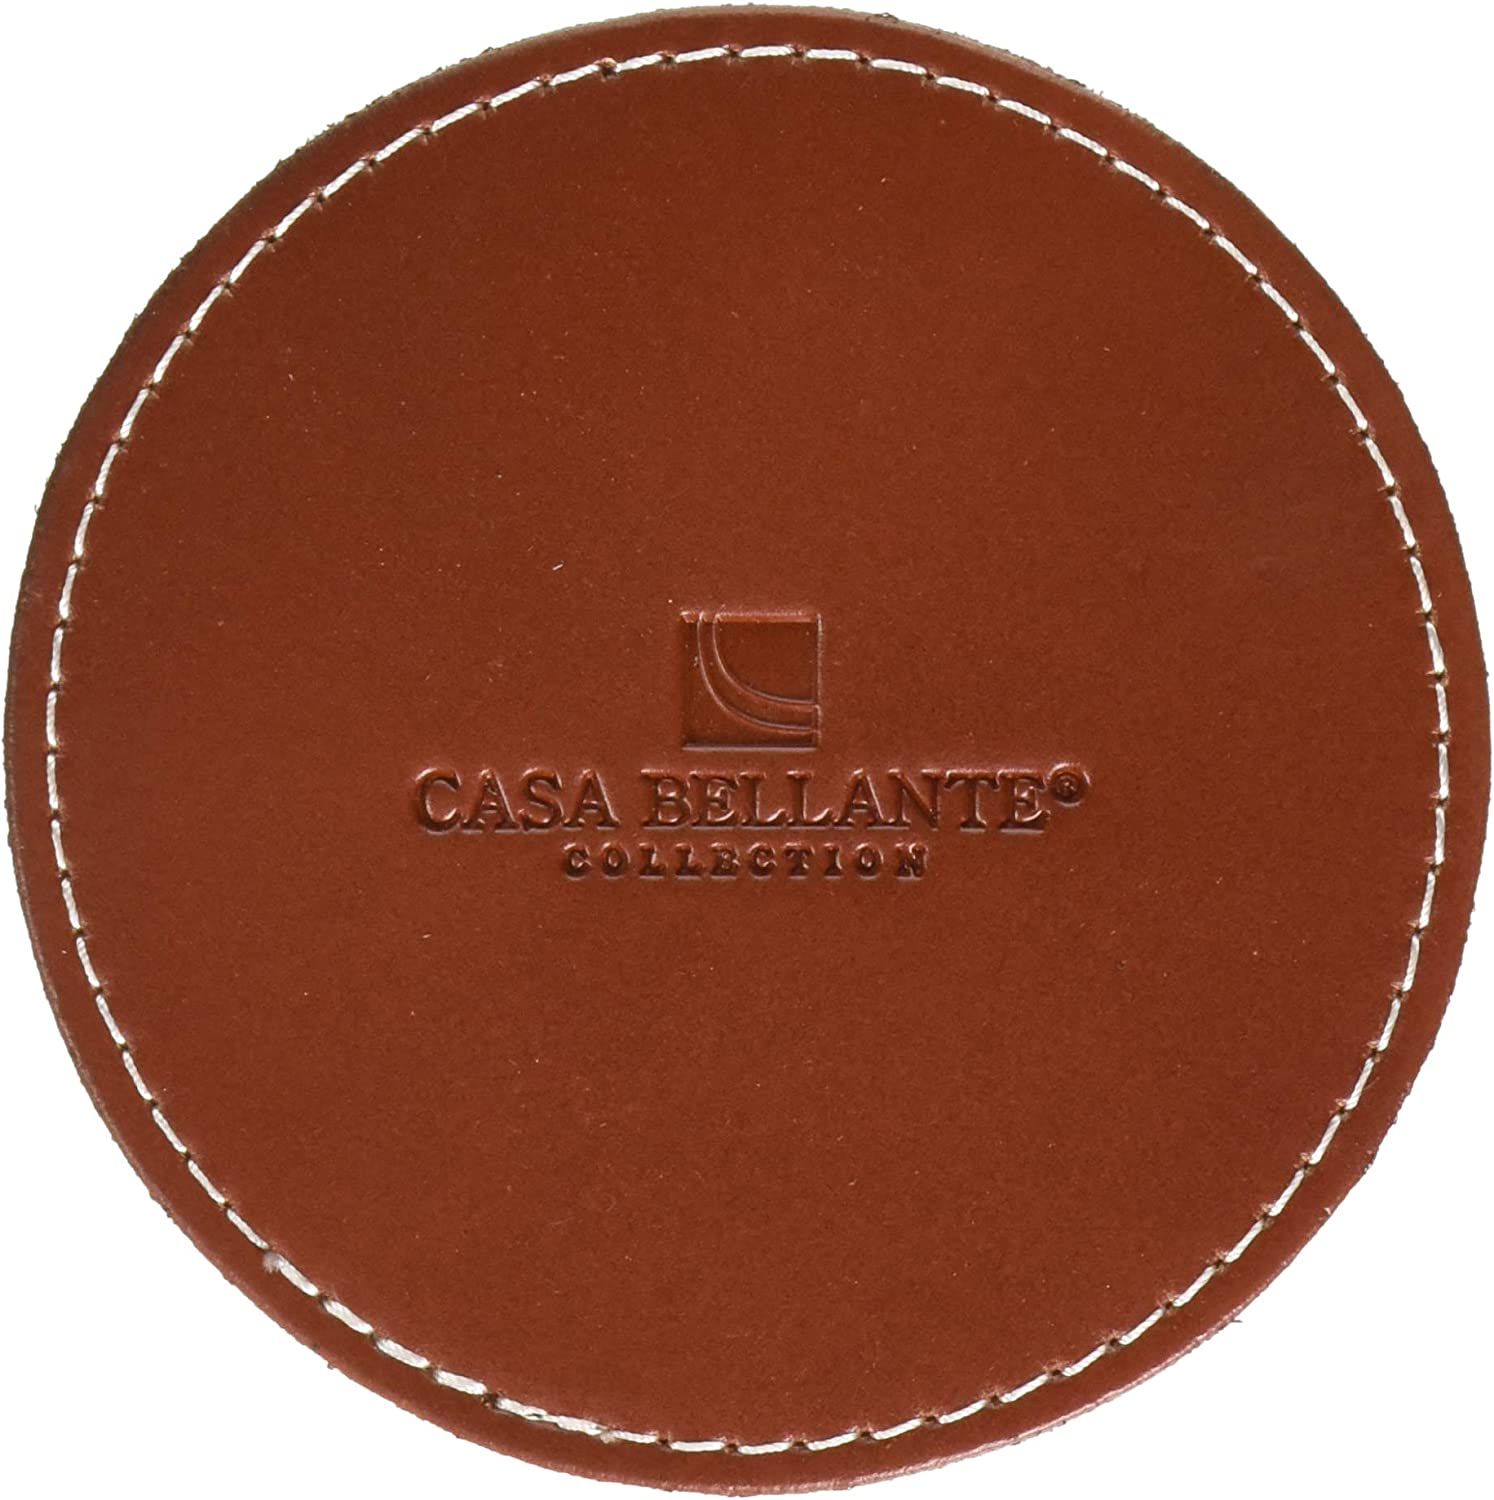 Casa Bellante J8-QZUE-65I0 Leather Coaster. Compatible for Apple HomePod, Amazon Echo,Google Home. Set of 2. (4 x 4 in.), Small, Brown